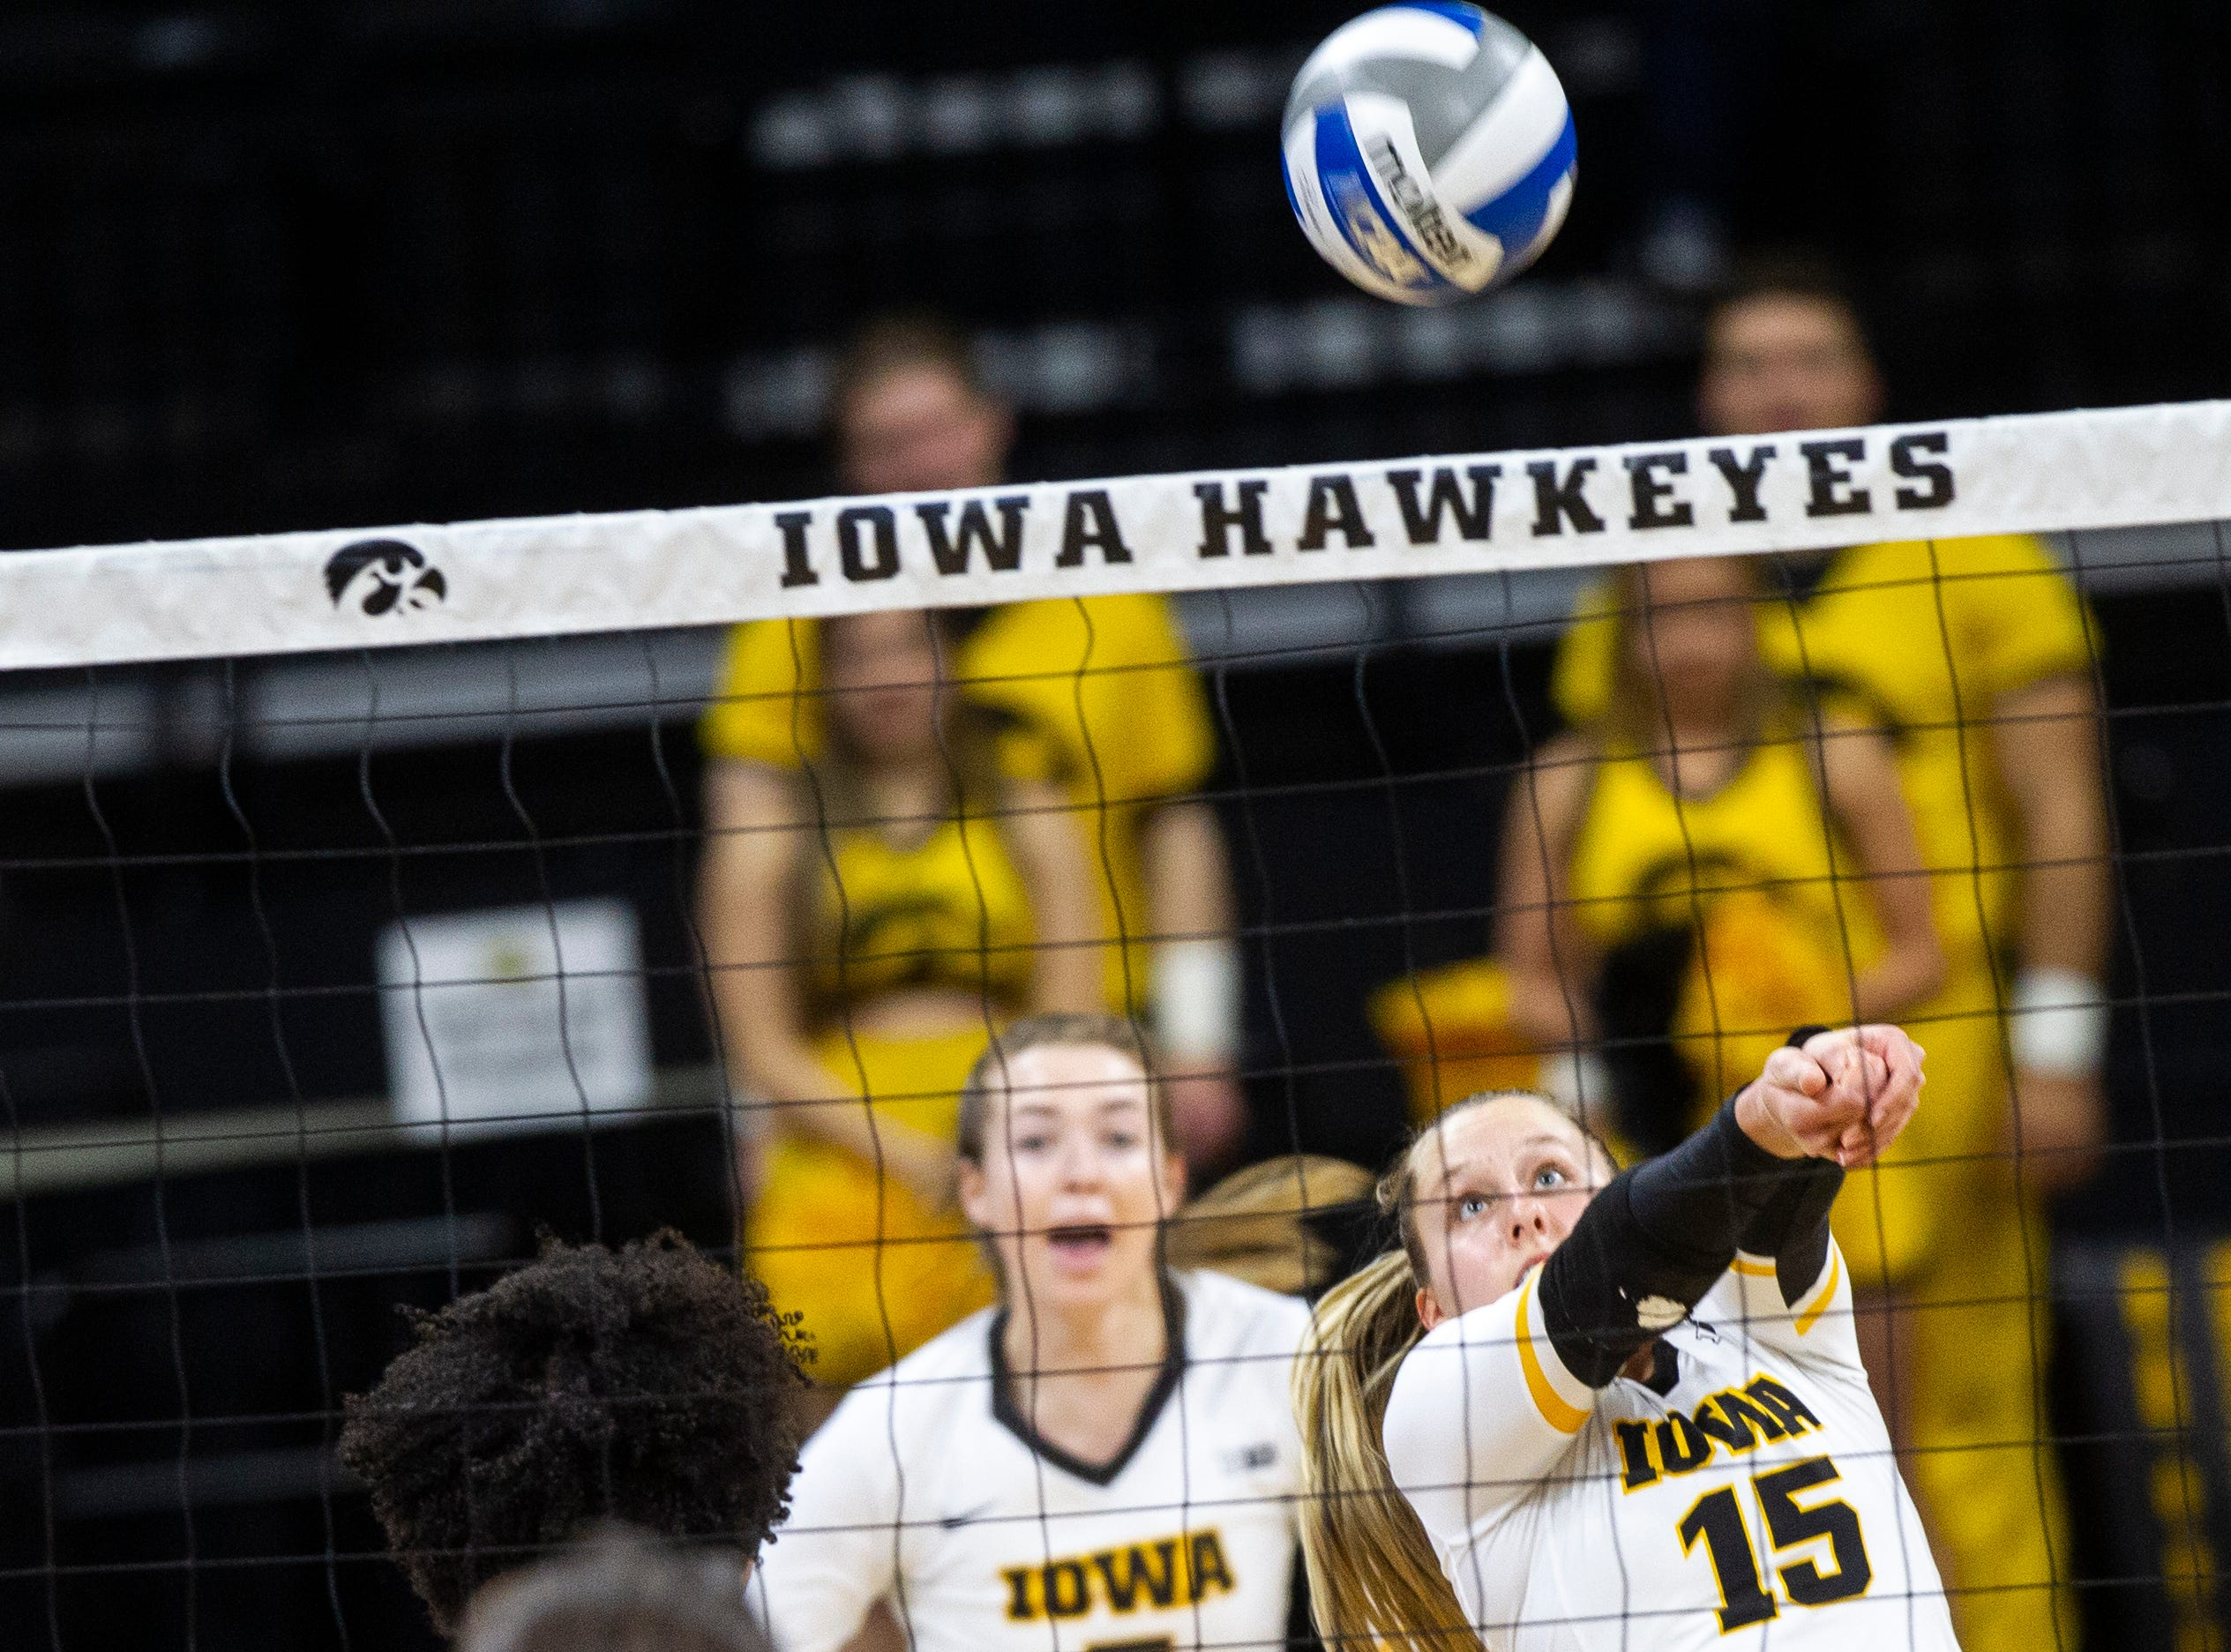 Iowa defensive specialist Maddie Slagle (15) makes a save during an NCAA volleyball game on Wednesday, Nov. 7, 2018, at Carver-Hawkeye Arena in Iowa City.